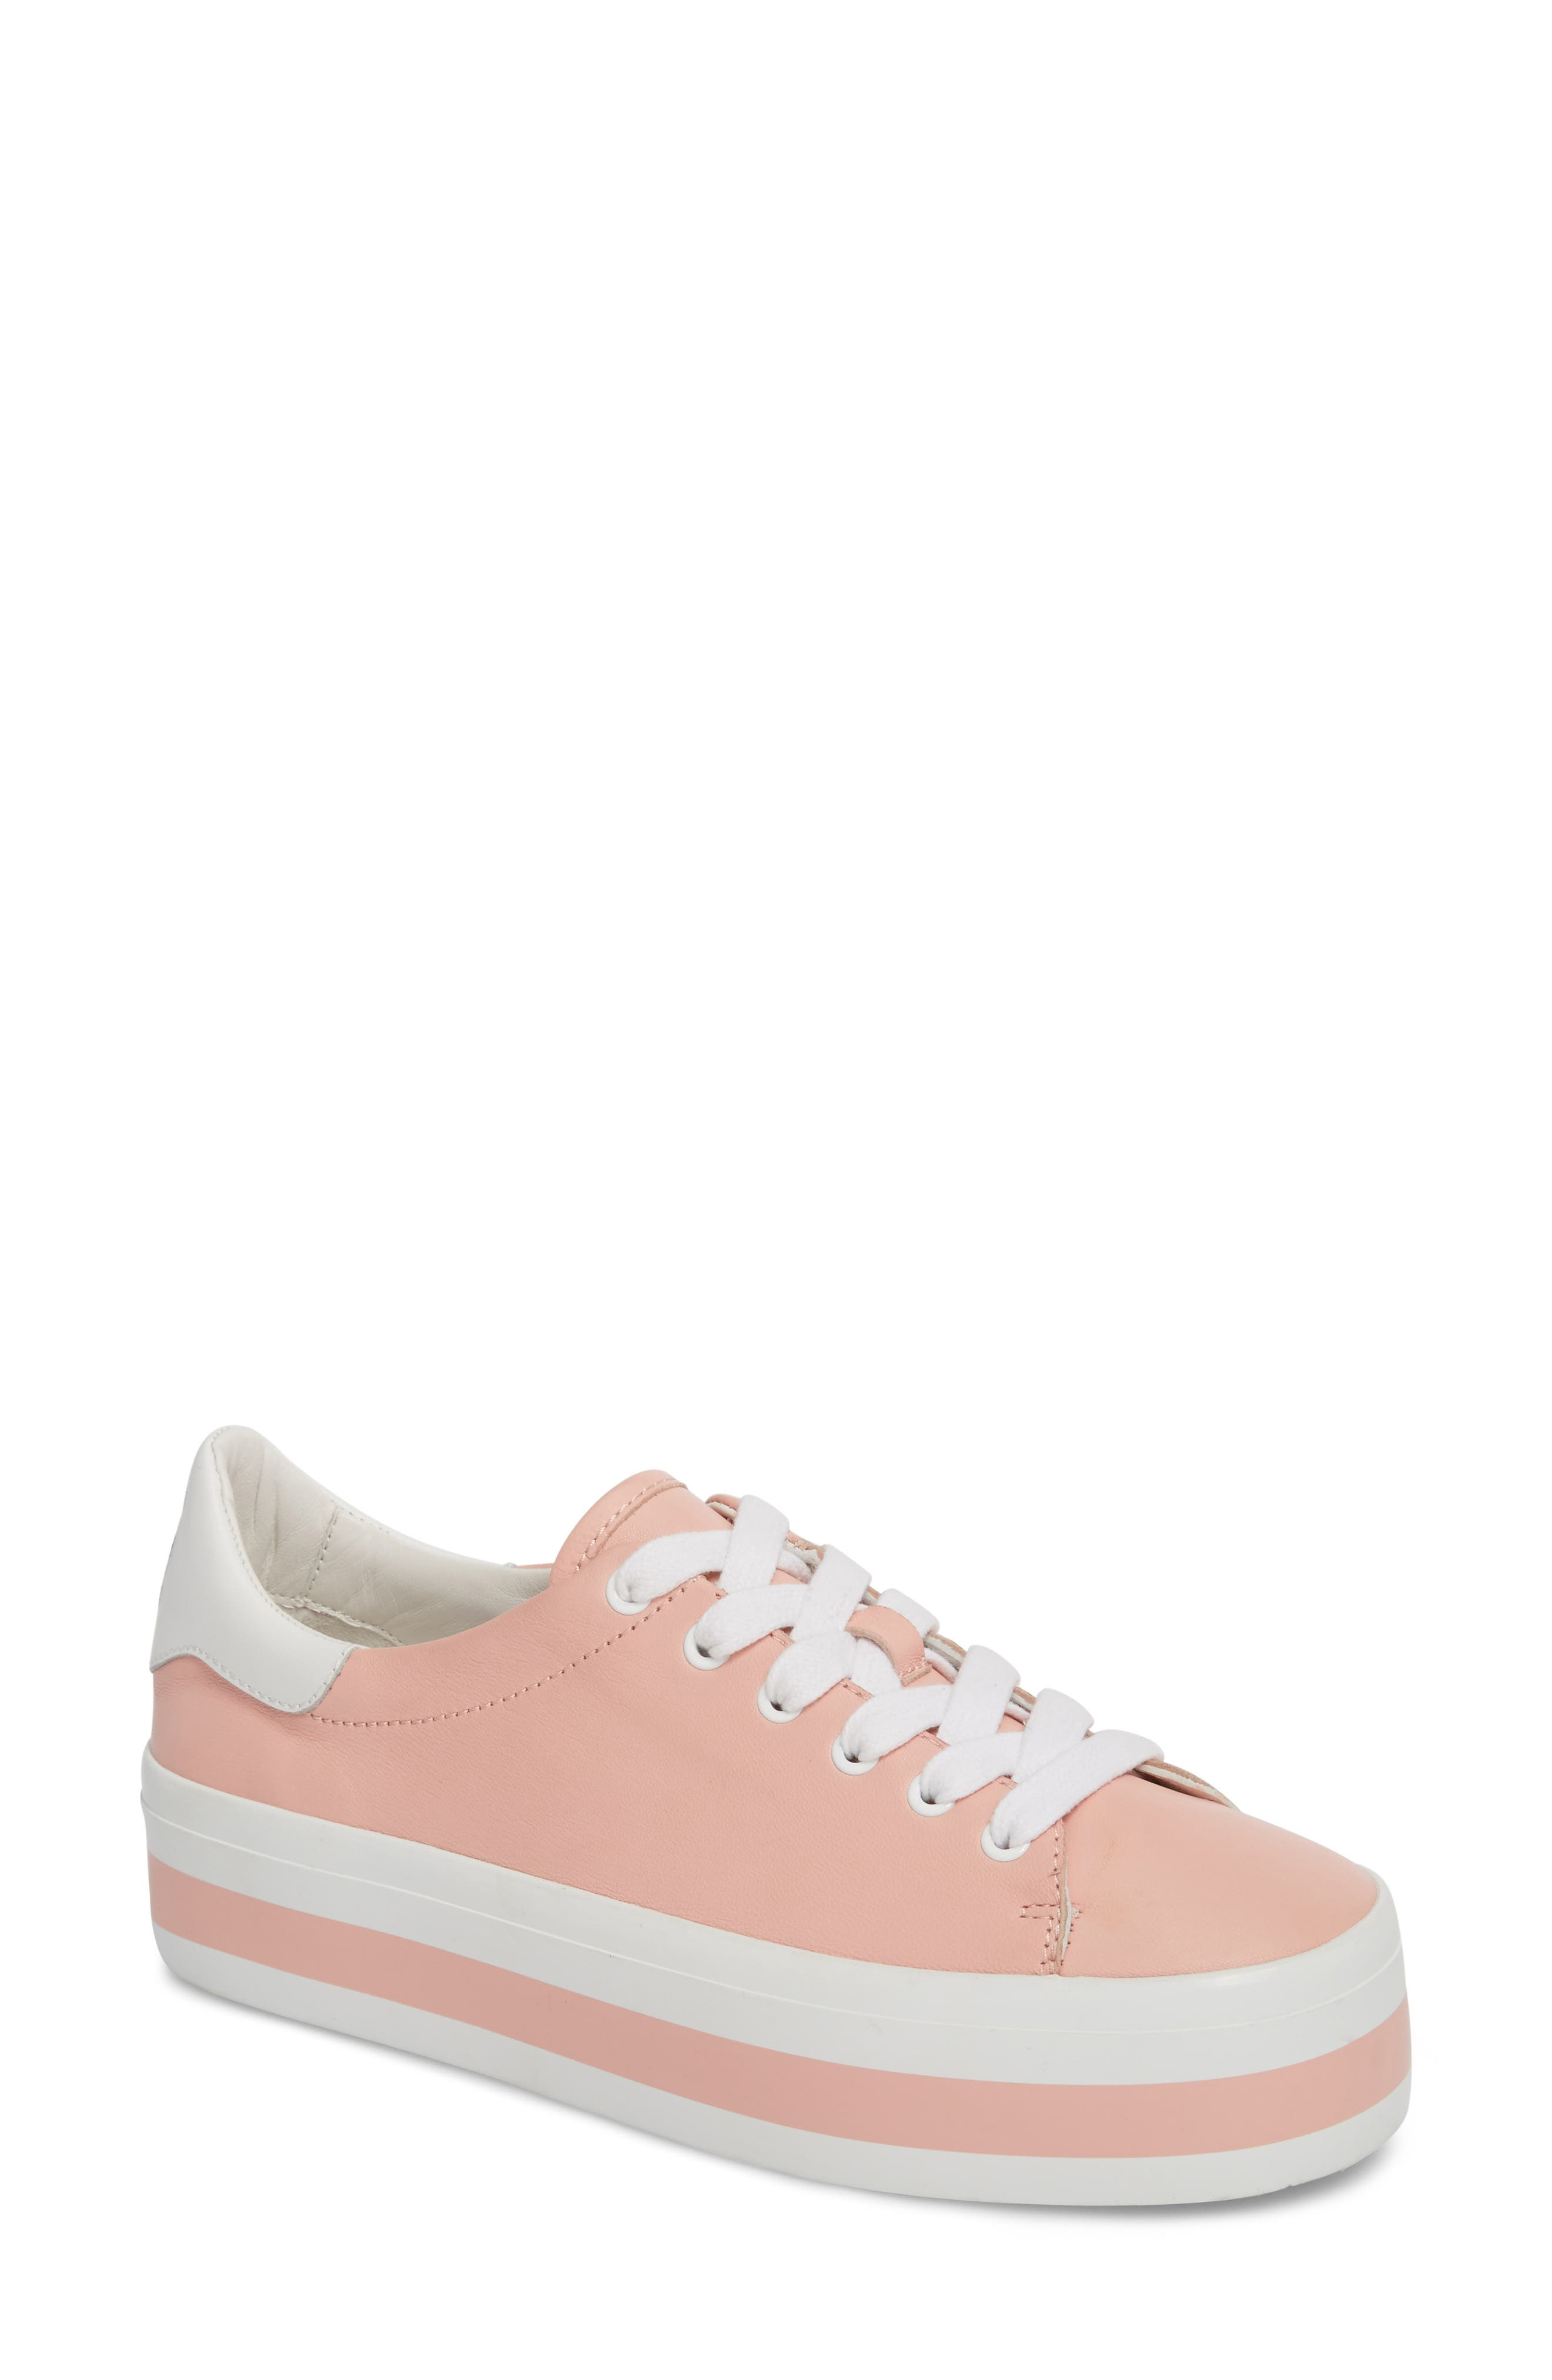 Ezra Flatform Sneaker,                         Main,                         color, Perfect Pink / Pure White